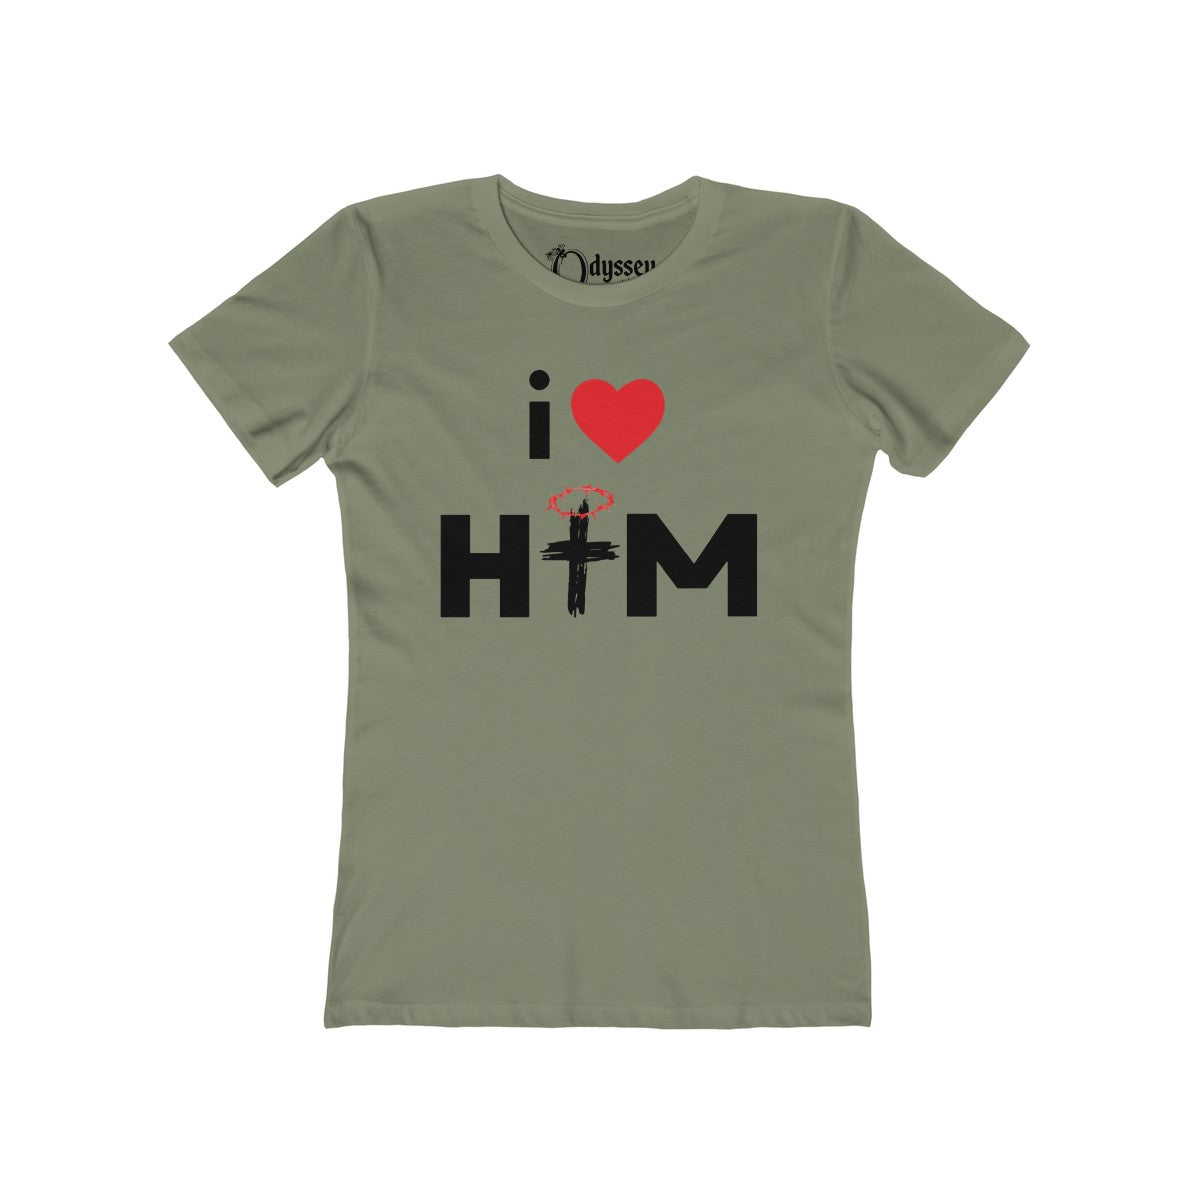 Odyssey I Love Him Women's Tee - Light